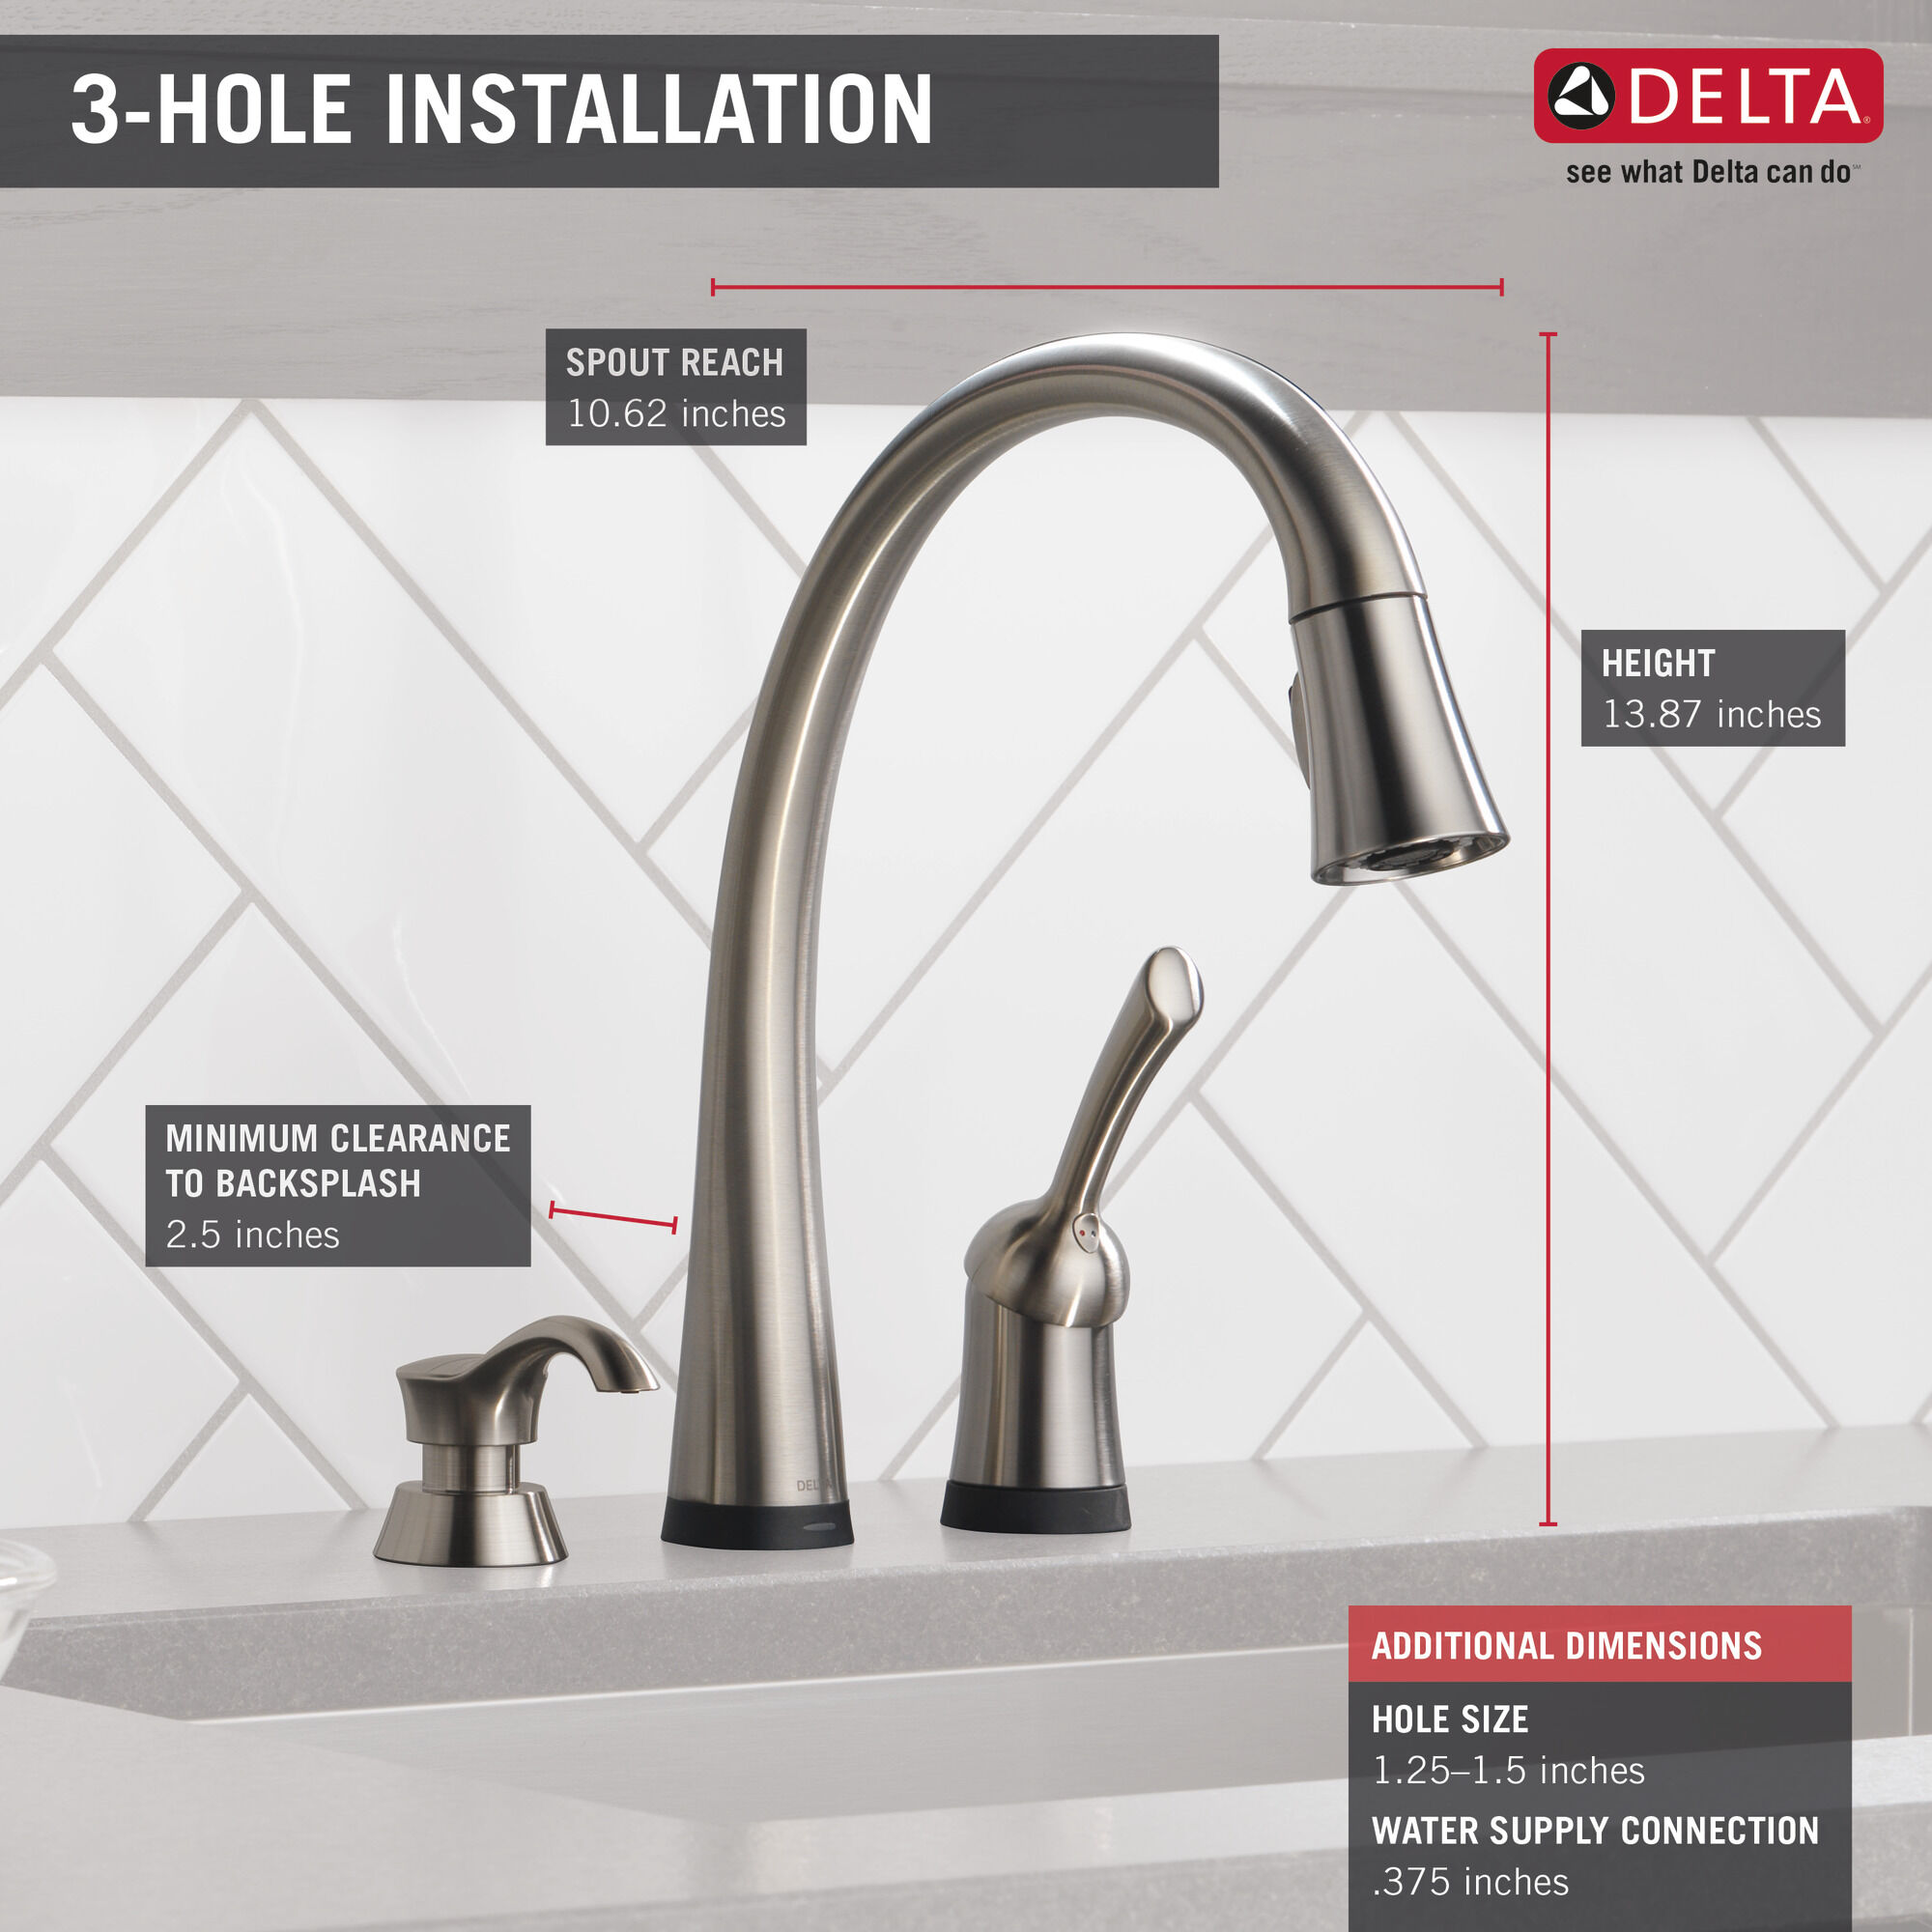 single handle pull down kitchen faucet with touch2o technology and soap dispenser